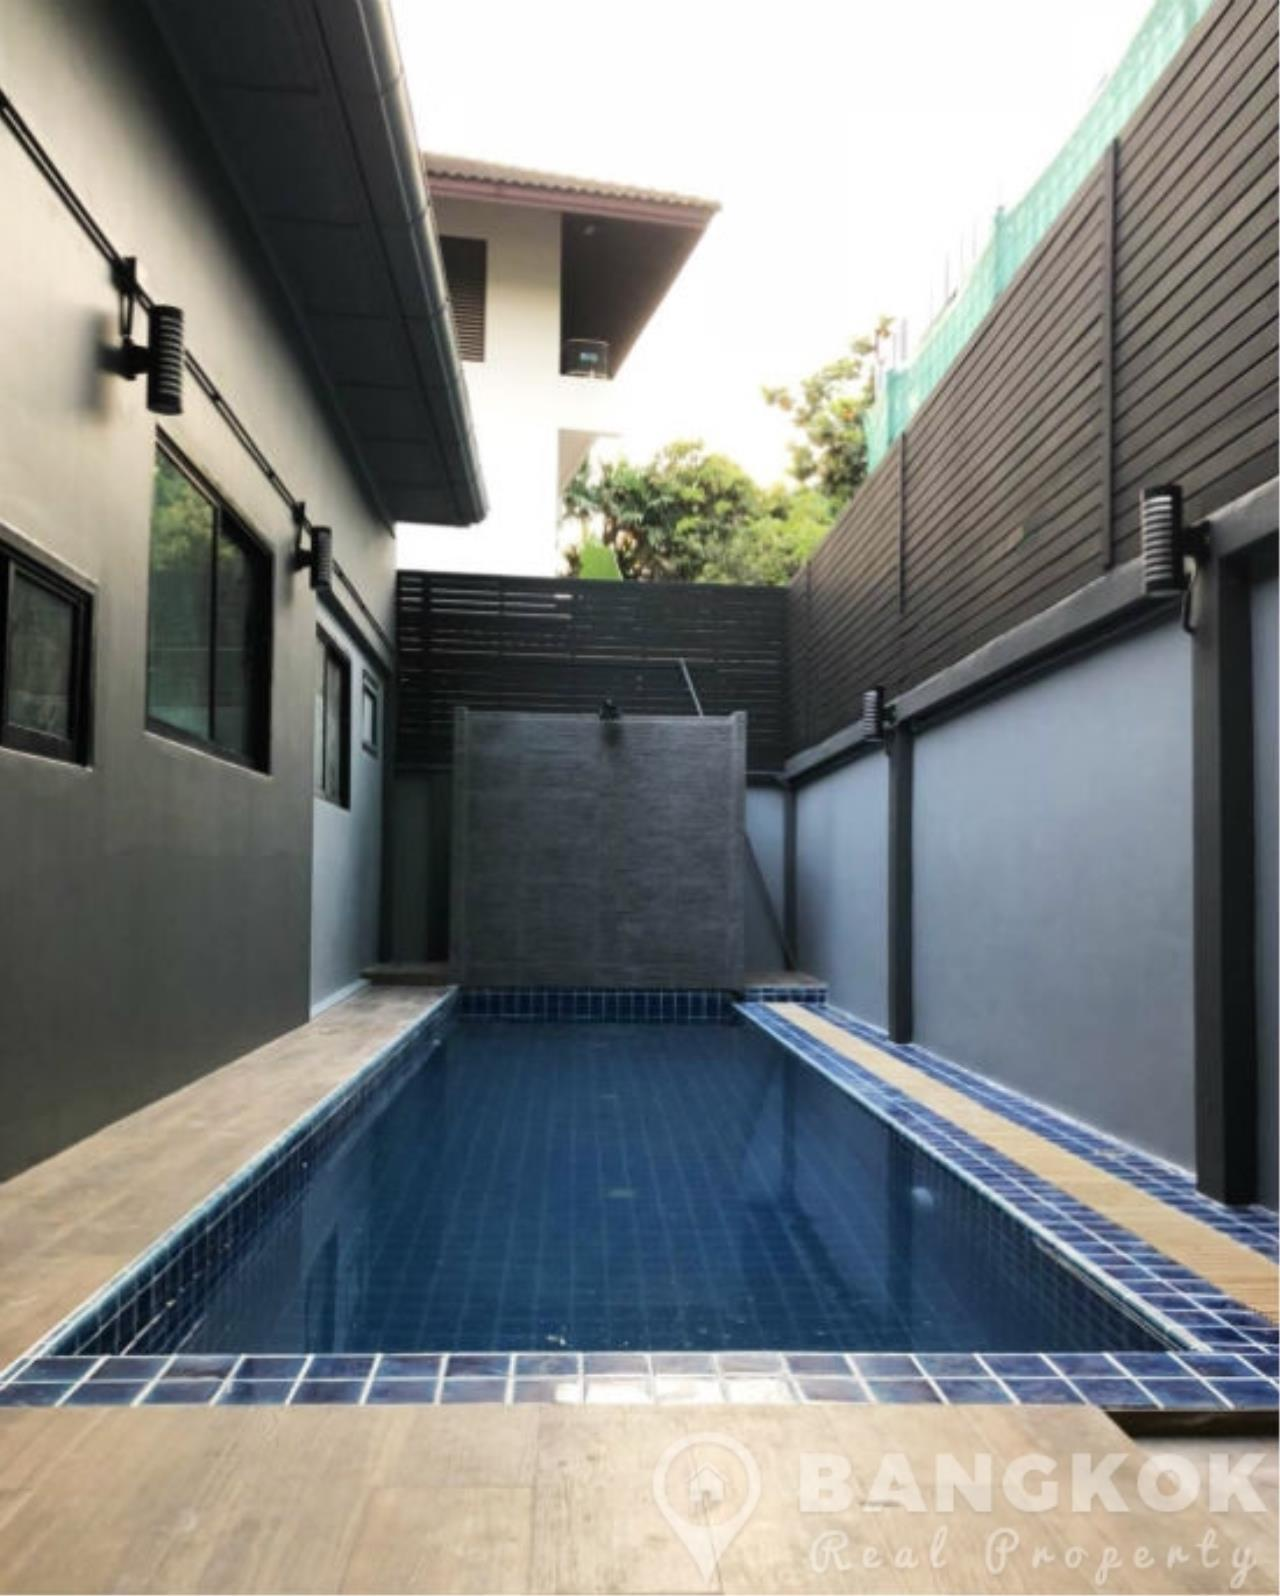 Bangkok Real Property Agency's Modern Detached House in Thonglor 4 Beds with Private Swimming Pool 2